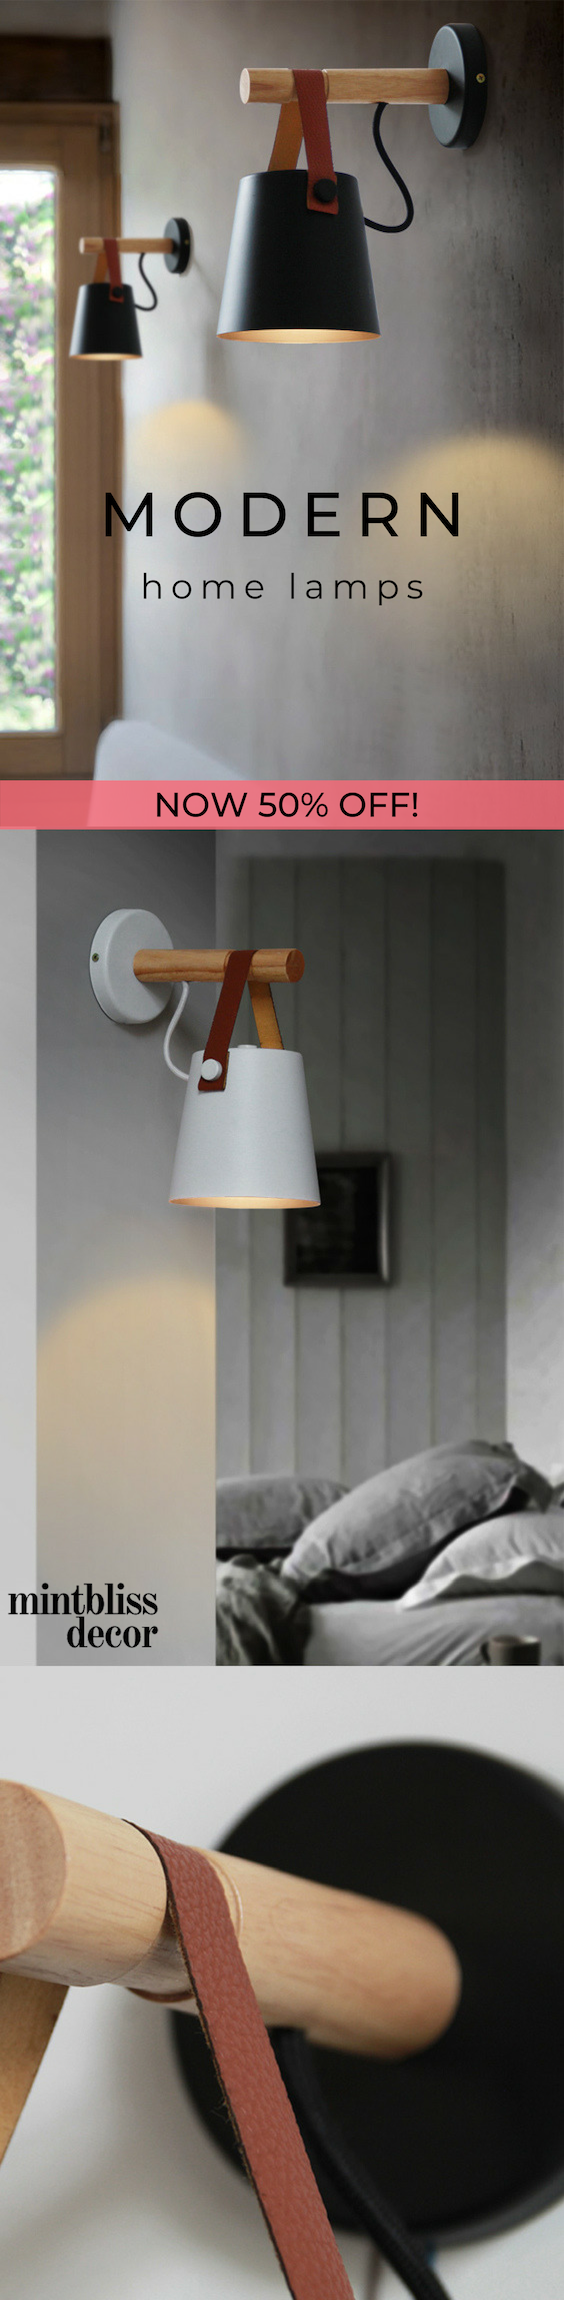 Are you looking for a modern and edgy wall light to